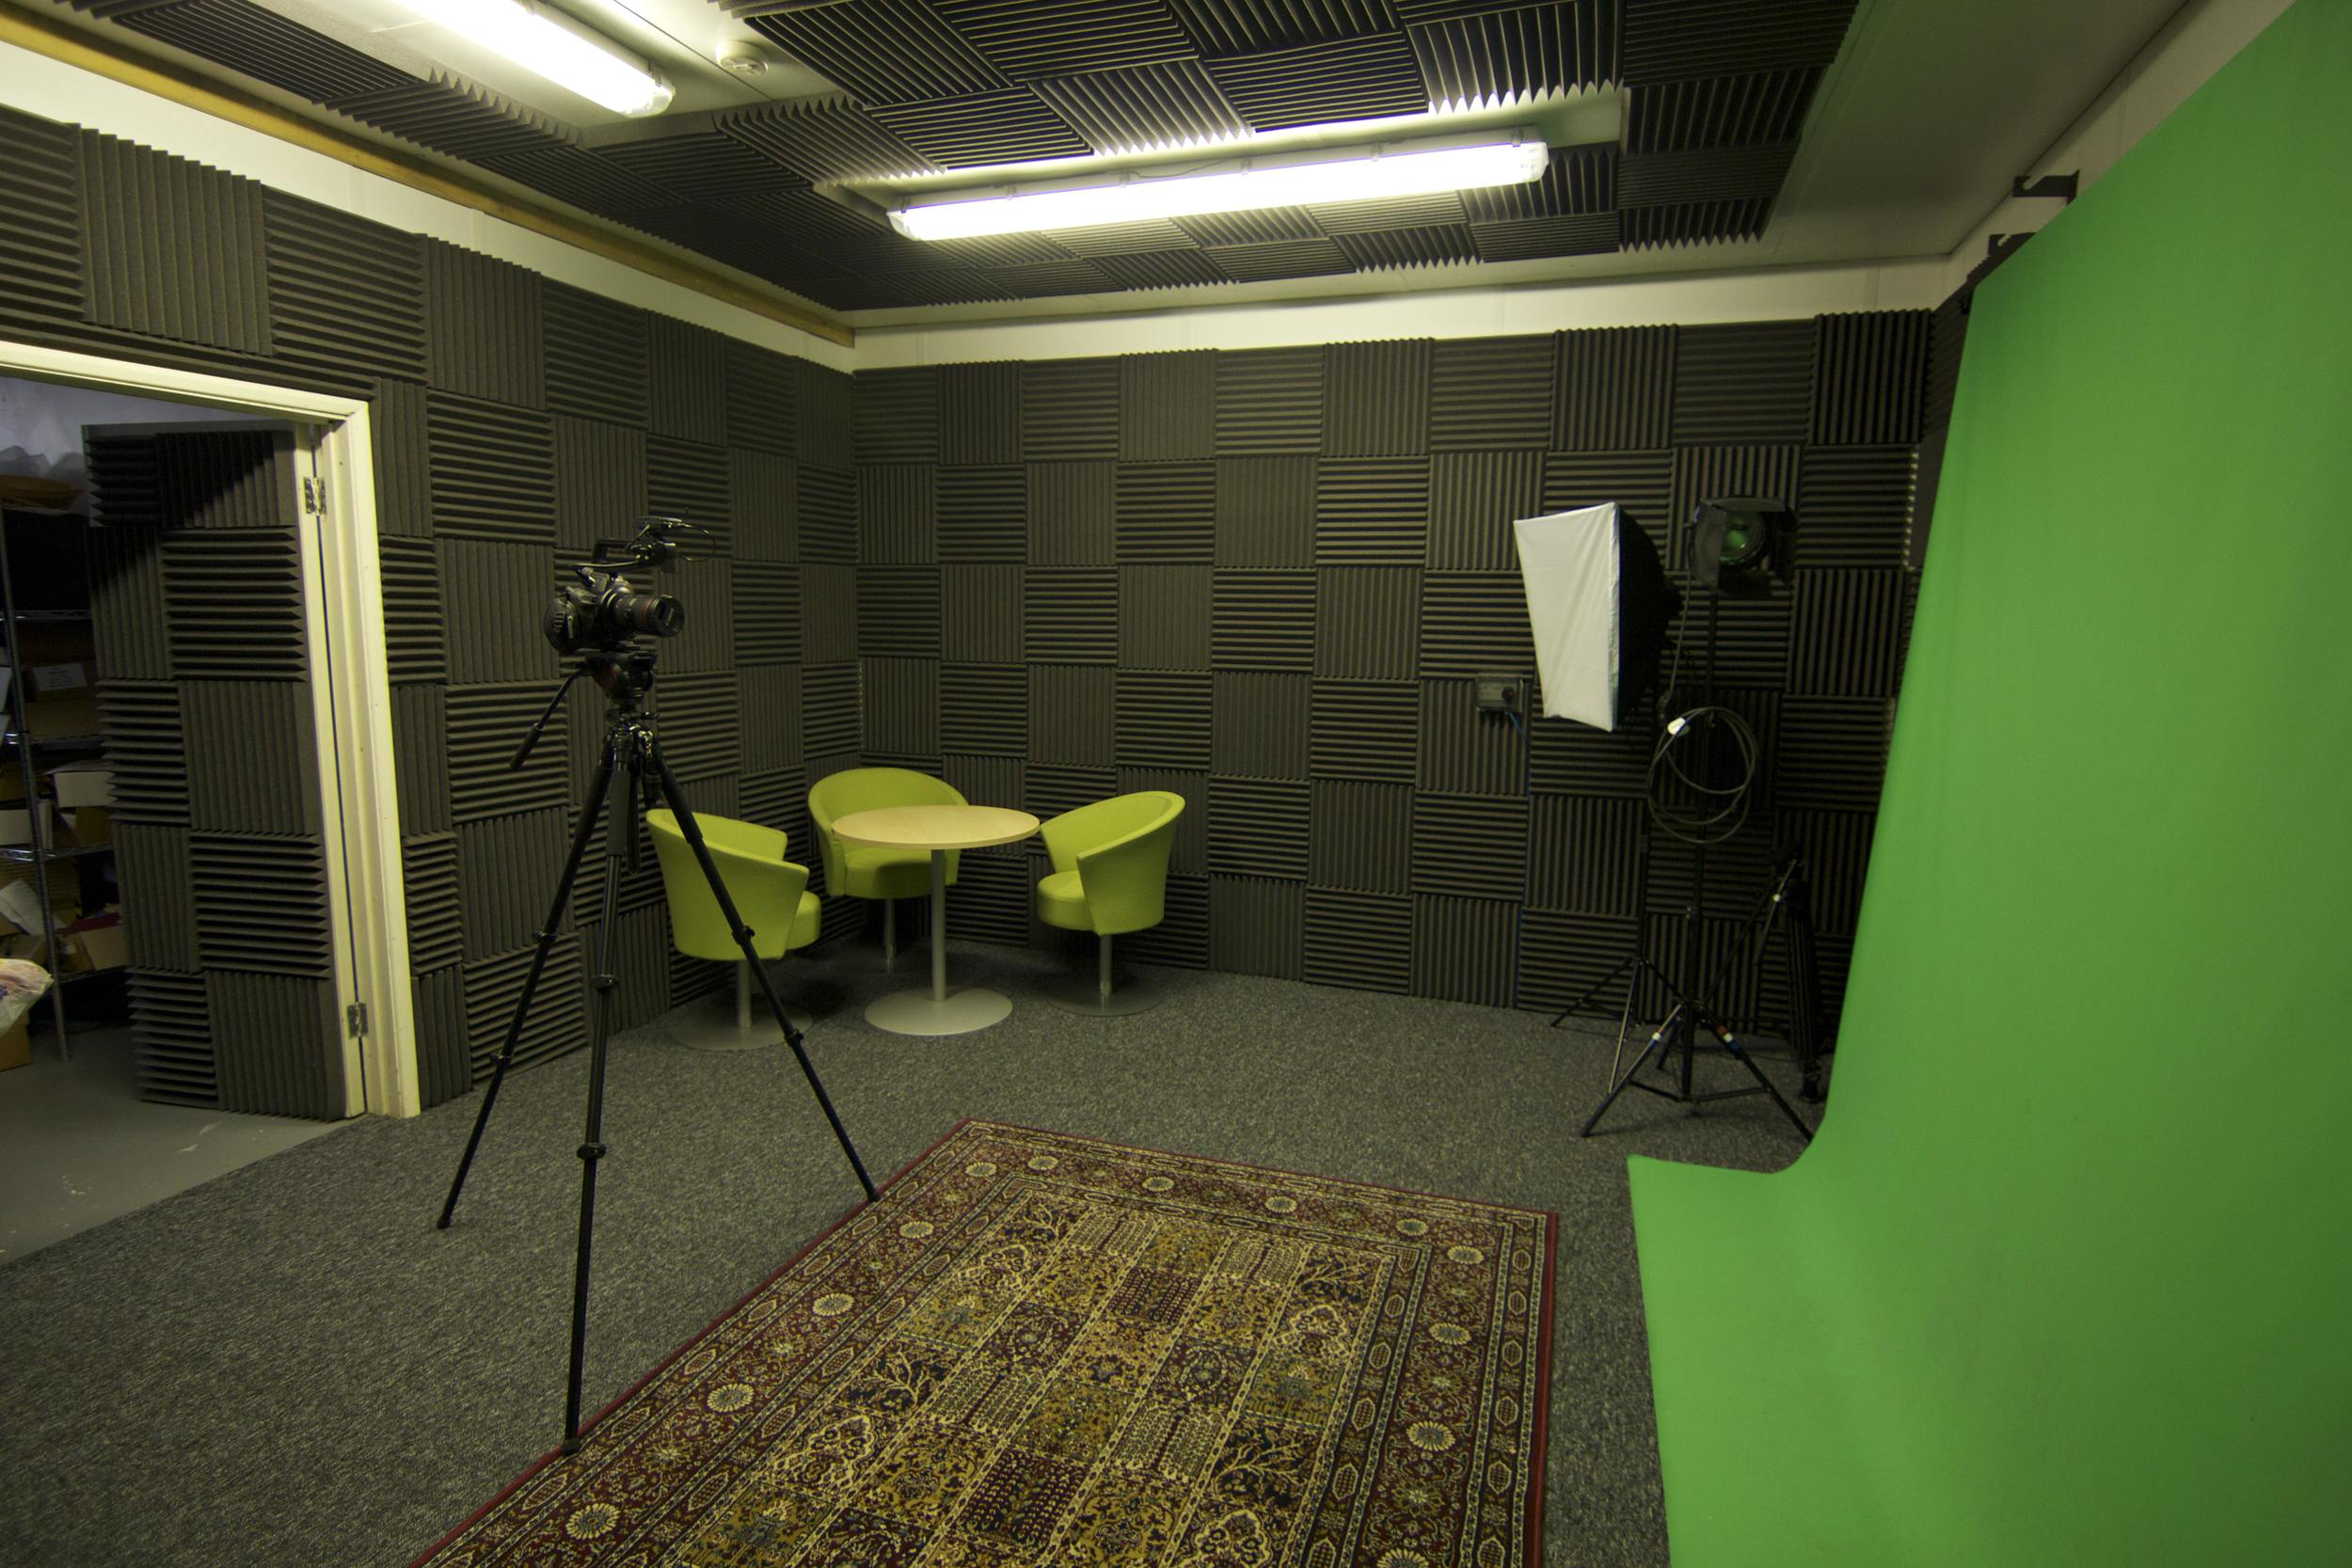 The green screen facilities have proven popular with many of United Magic's clients.